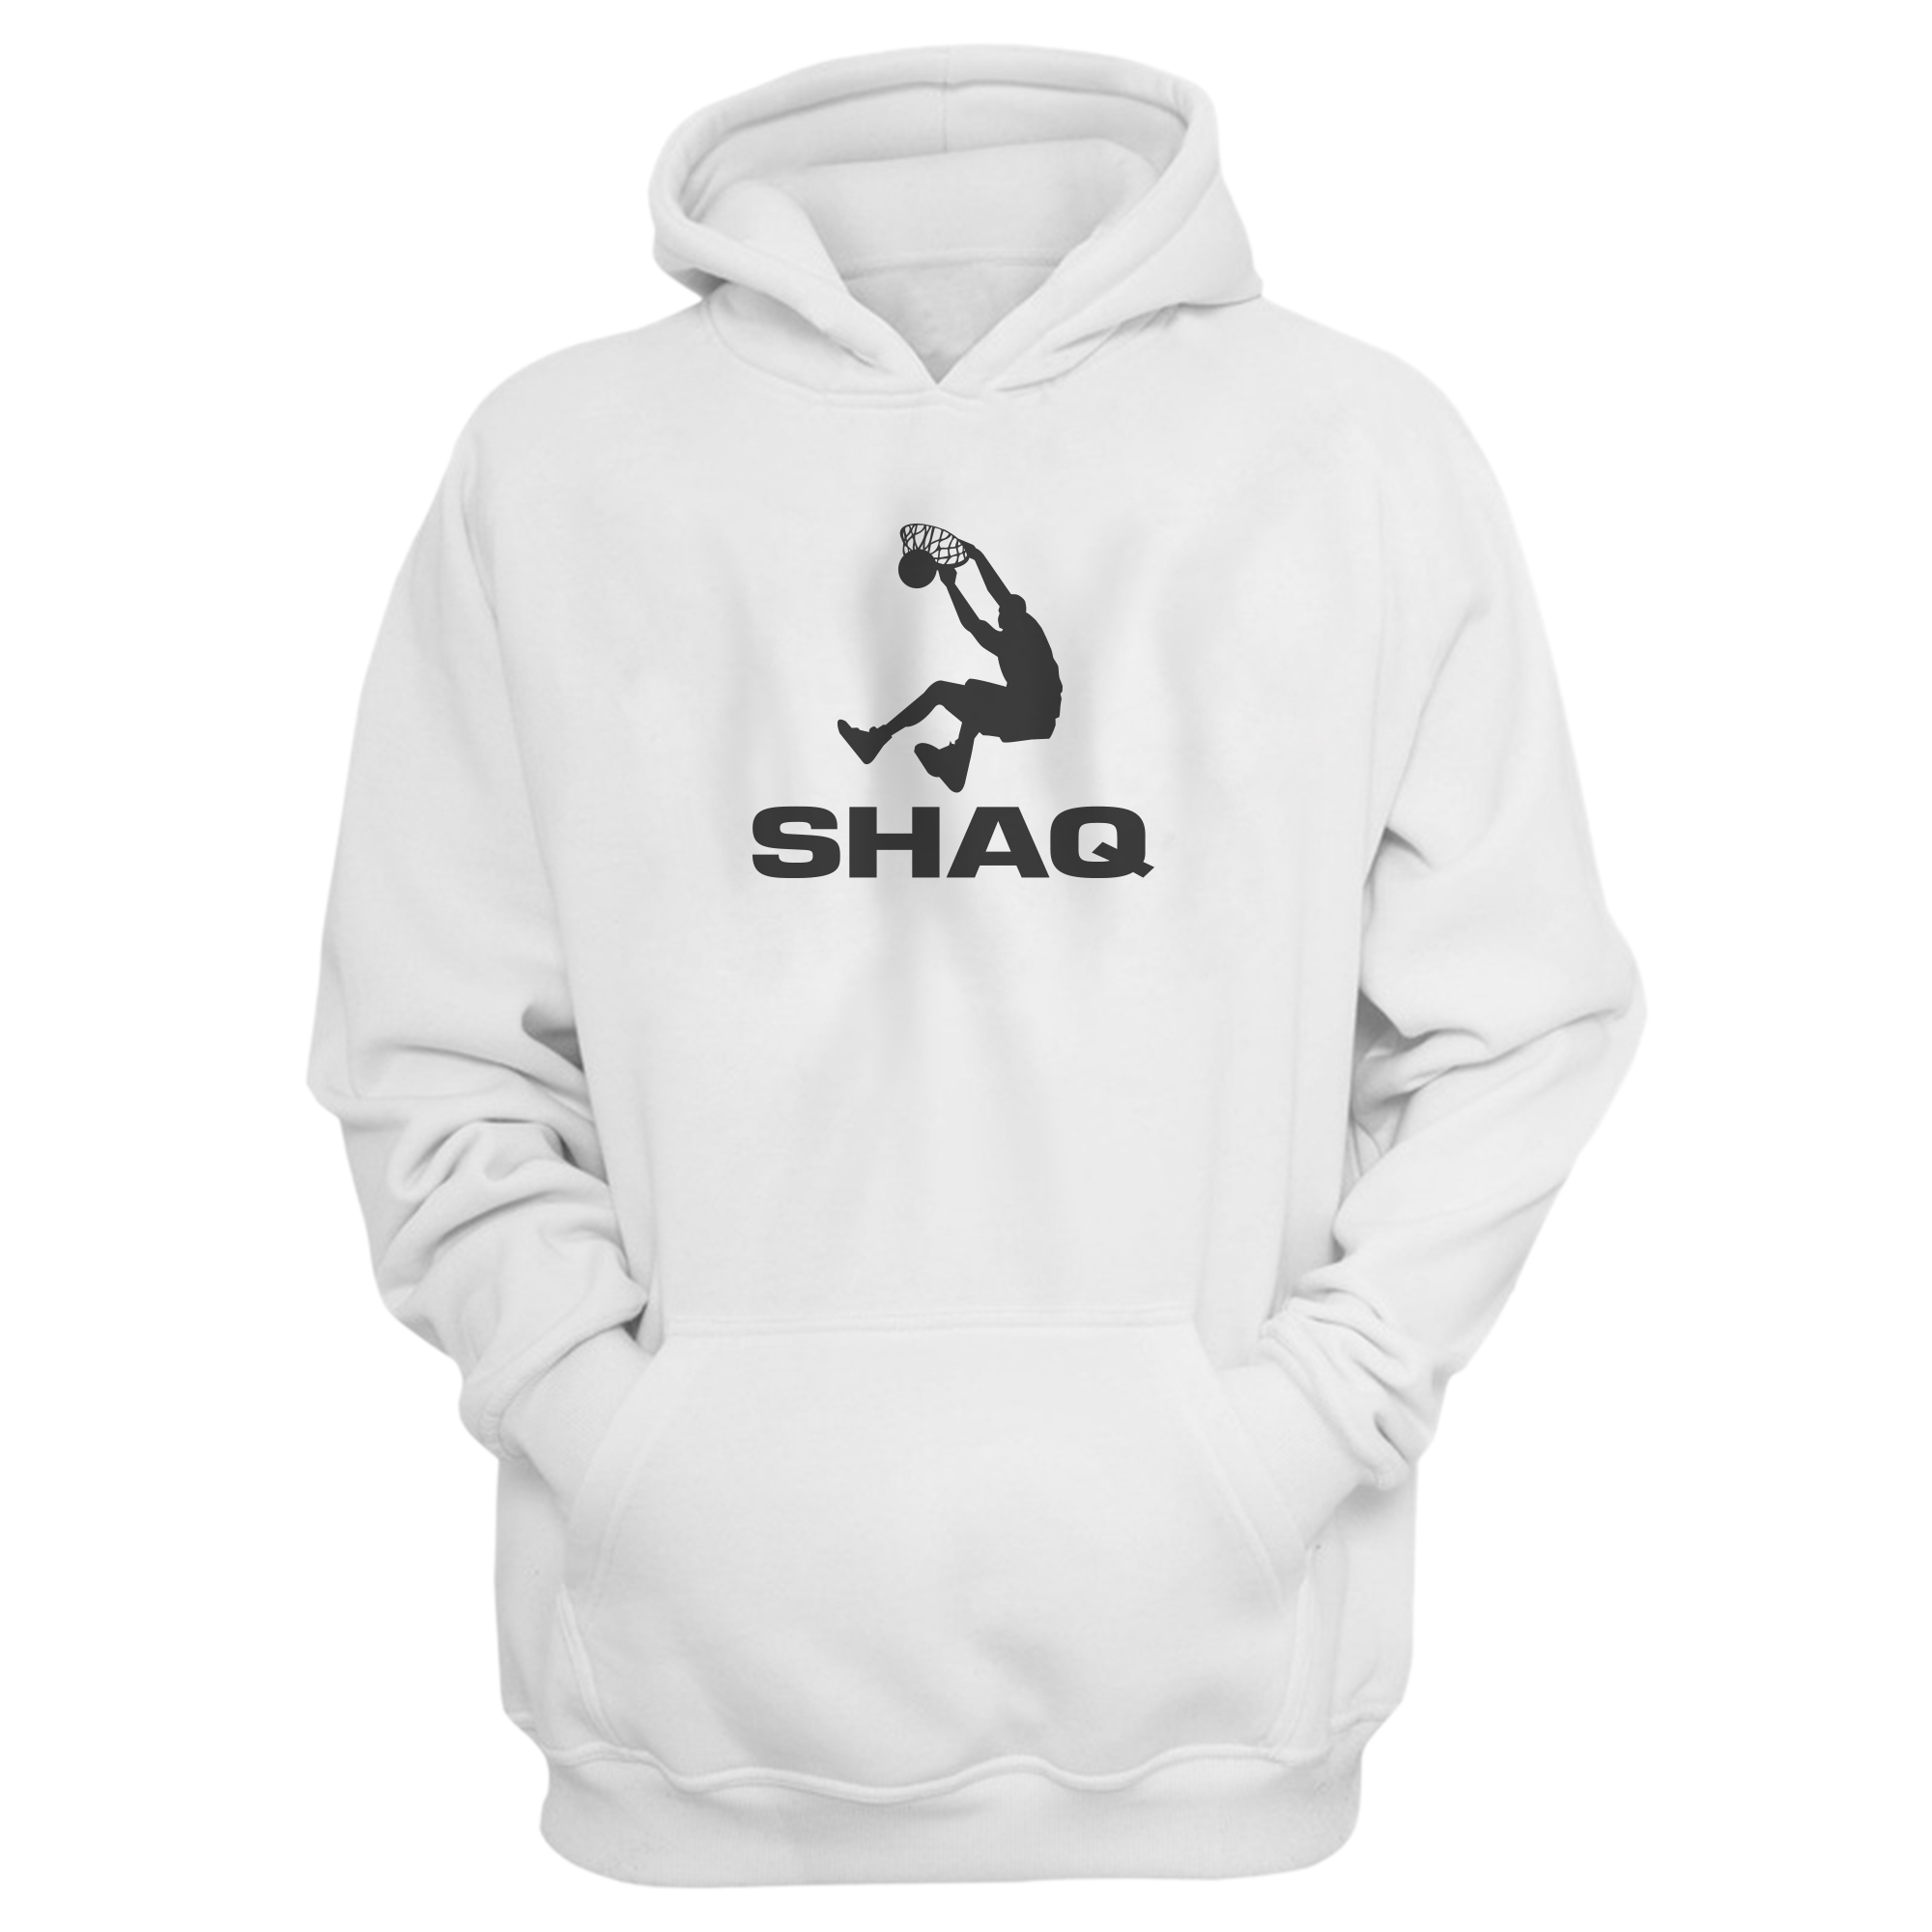 Shaquille O'Neal Hoodie (HD-WHT-NP-392-ShaquilleO'Neal)